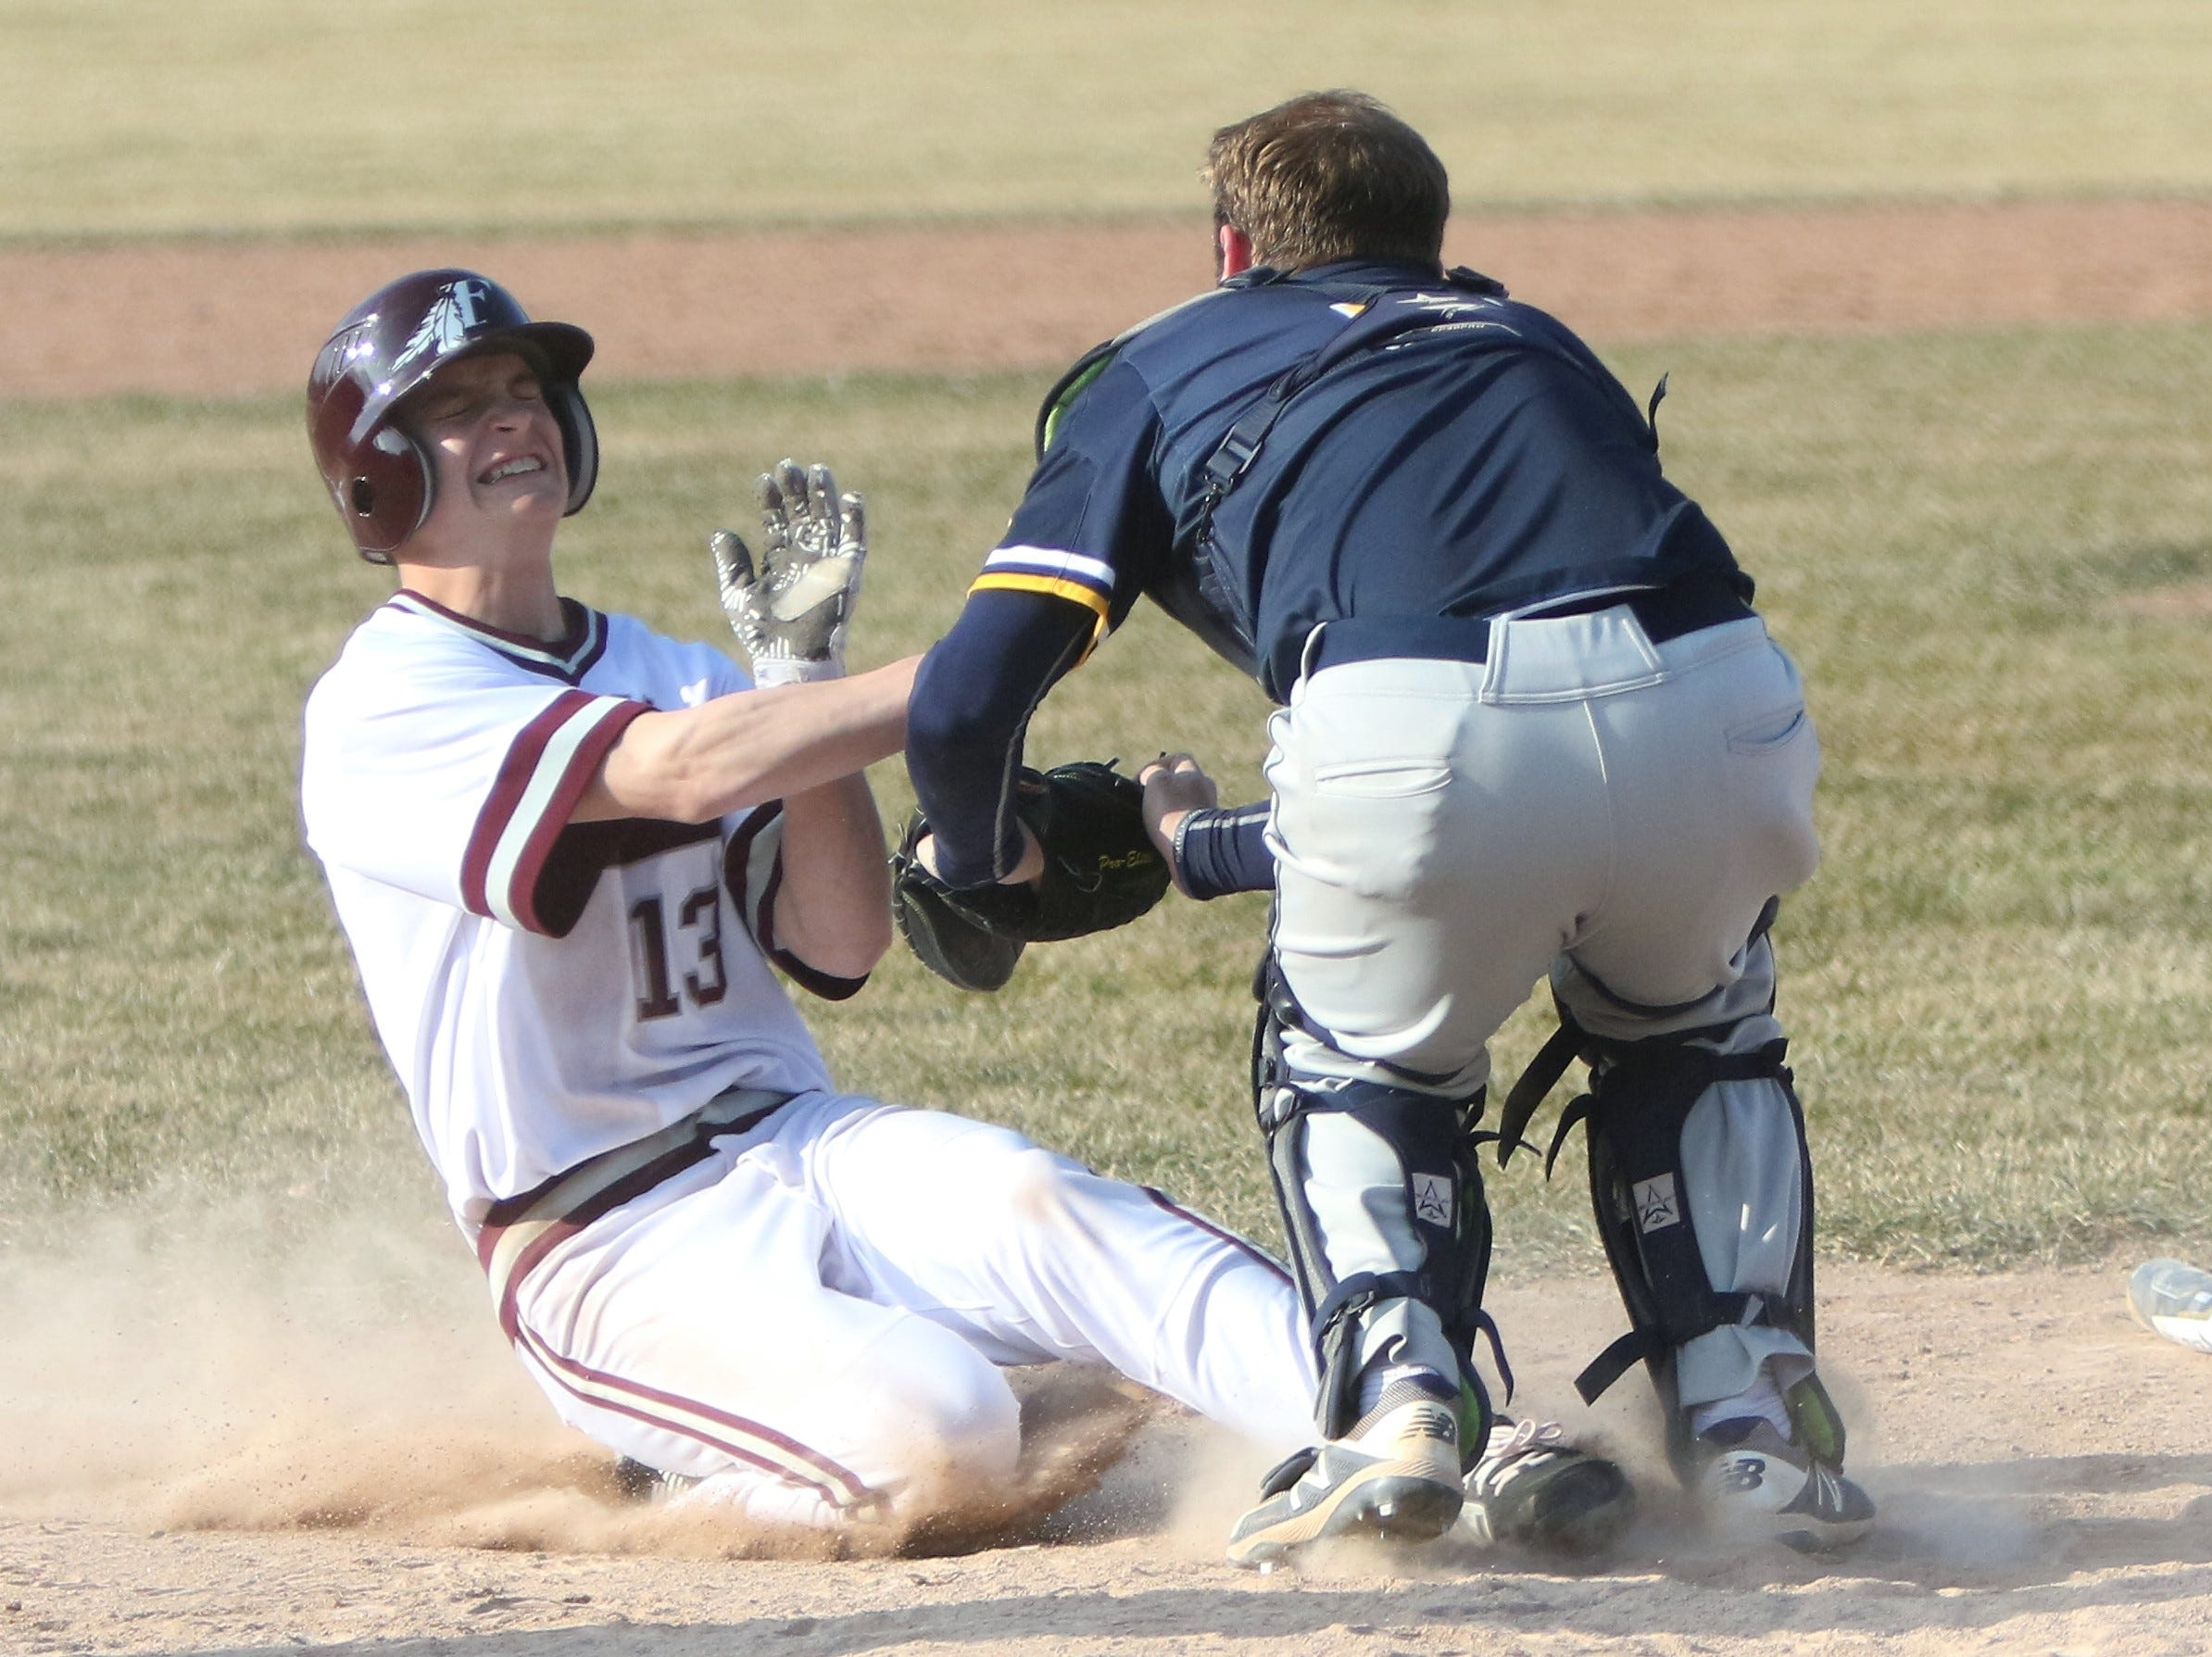 A Menomonee Falls base runner is tagged out at home plate in a game against Marquette on April 5, 2019.